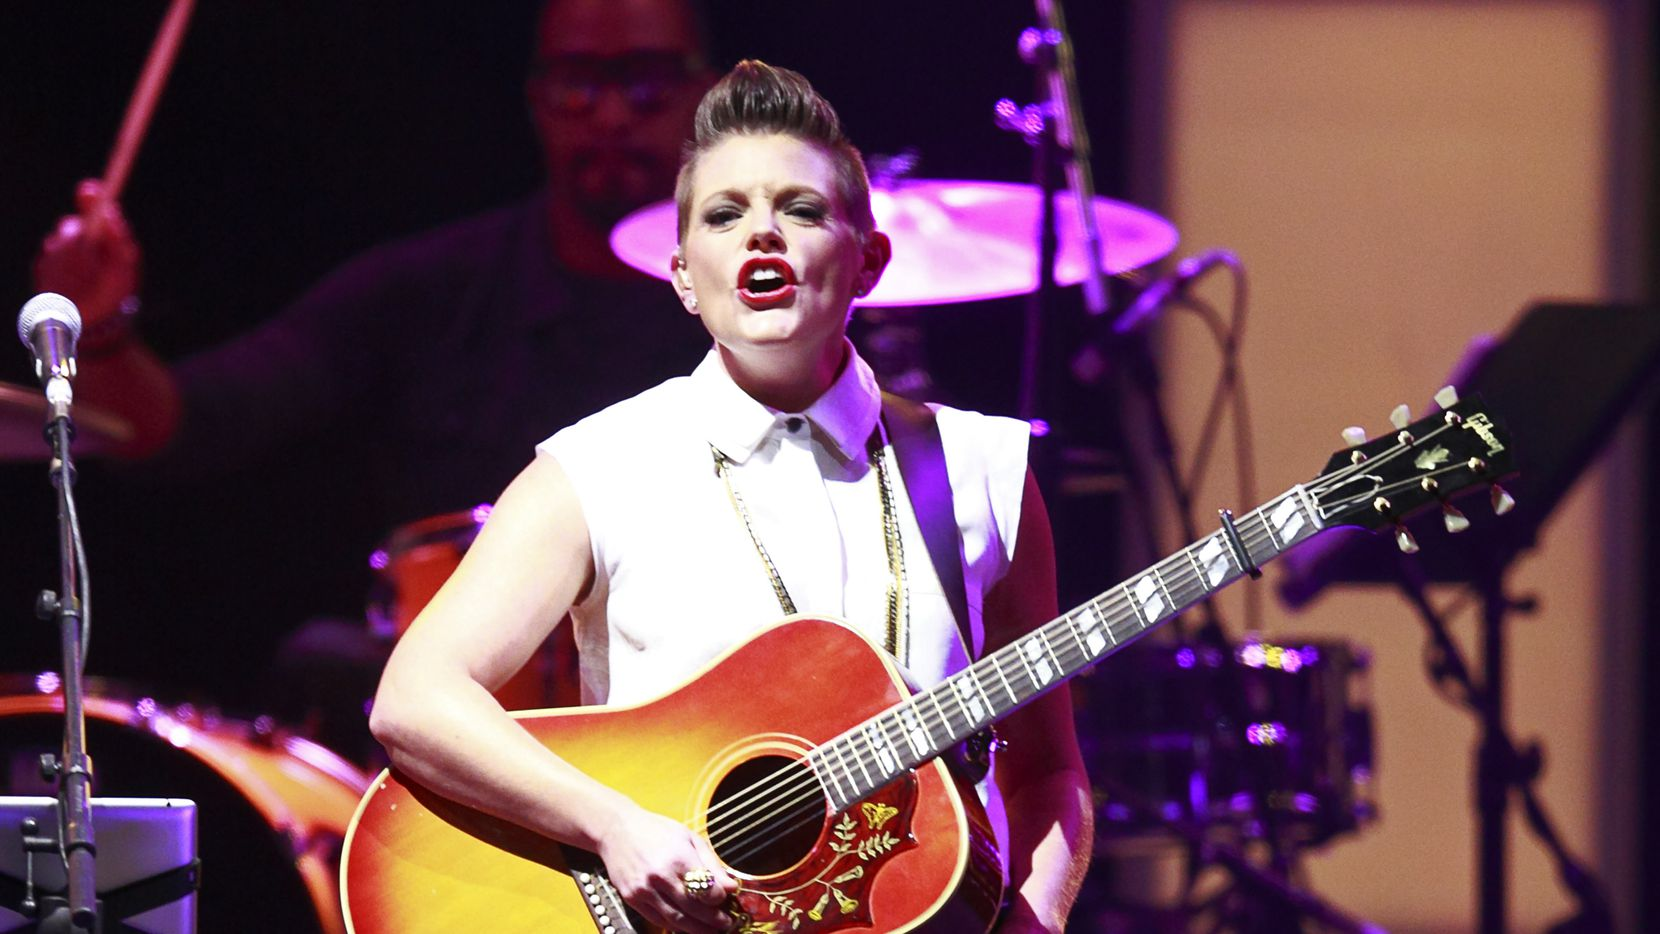 Natalie Maines of the Dixie Chicks performs during the first show of their Long Time Gone tour at Rogers Arena on Oct. 26, 2013 in Vancouver, British Columbia, Canada.